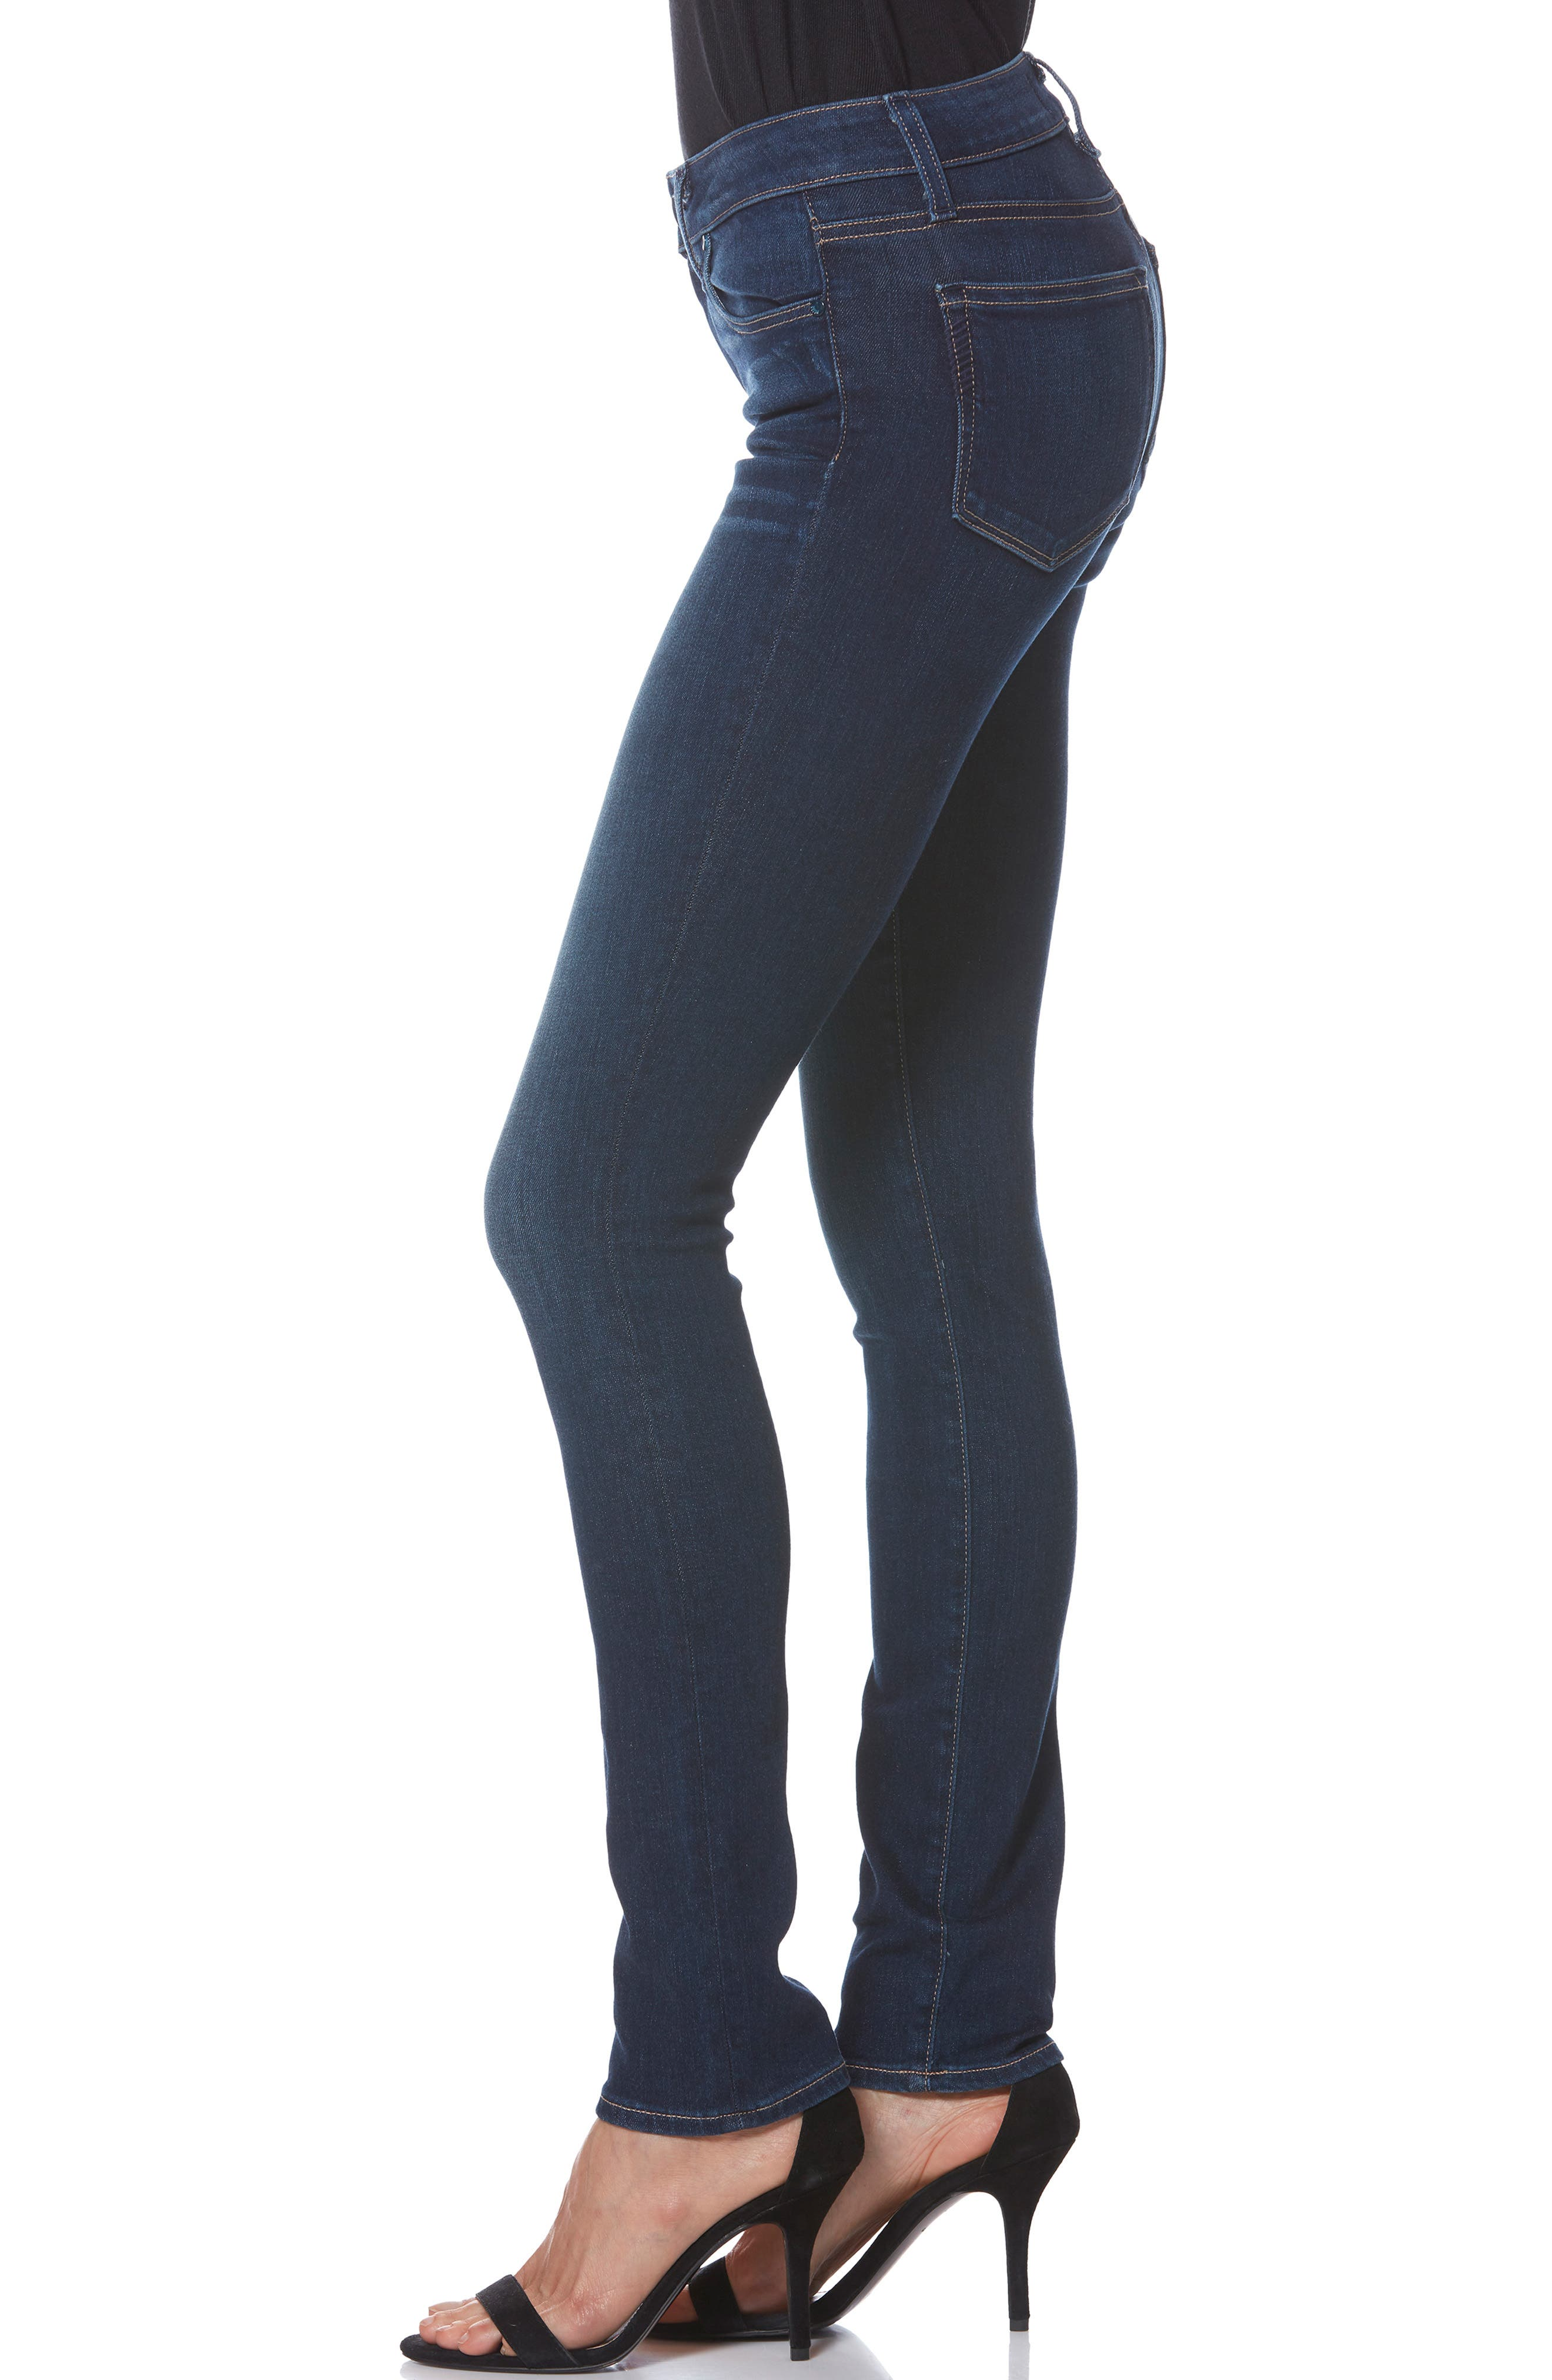 PAIGE, Skyline Skinny Jeans, Alternate thumbnail 4, color, IDLEWILD